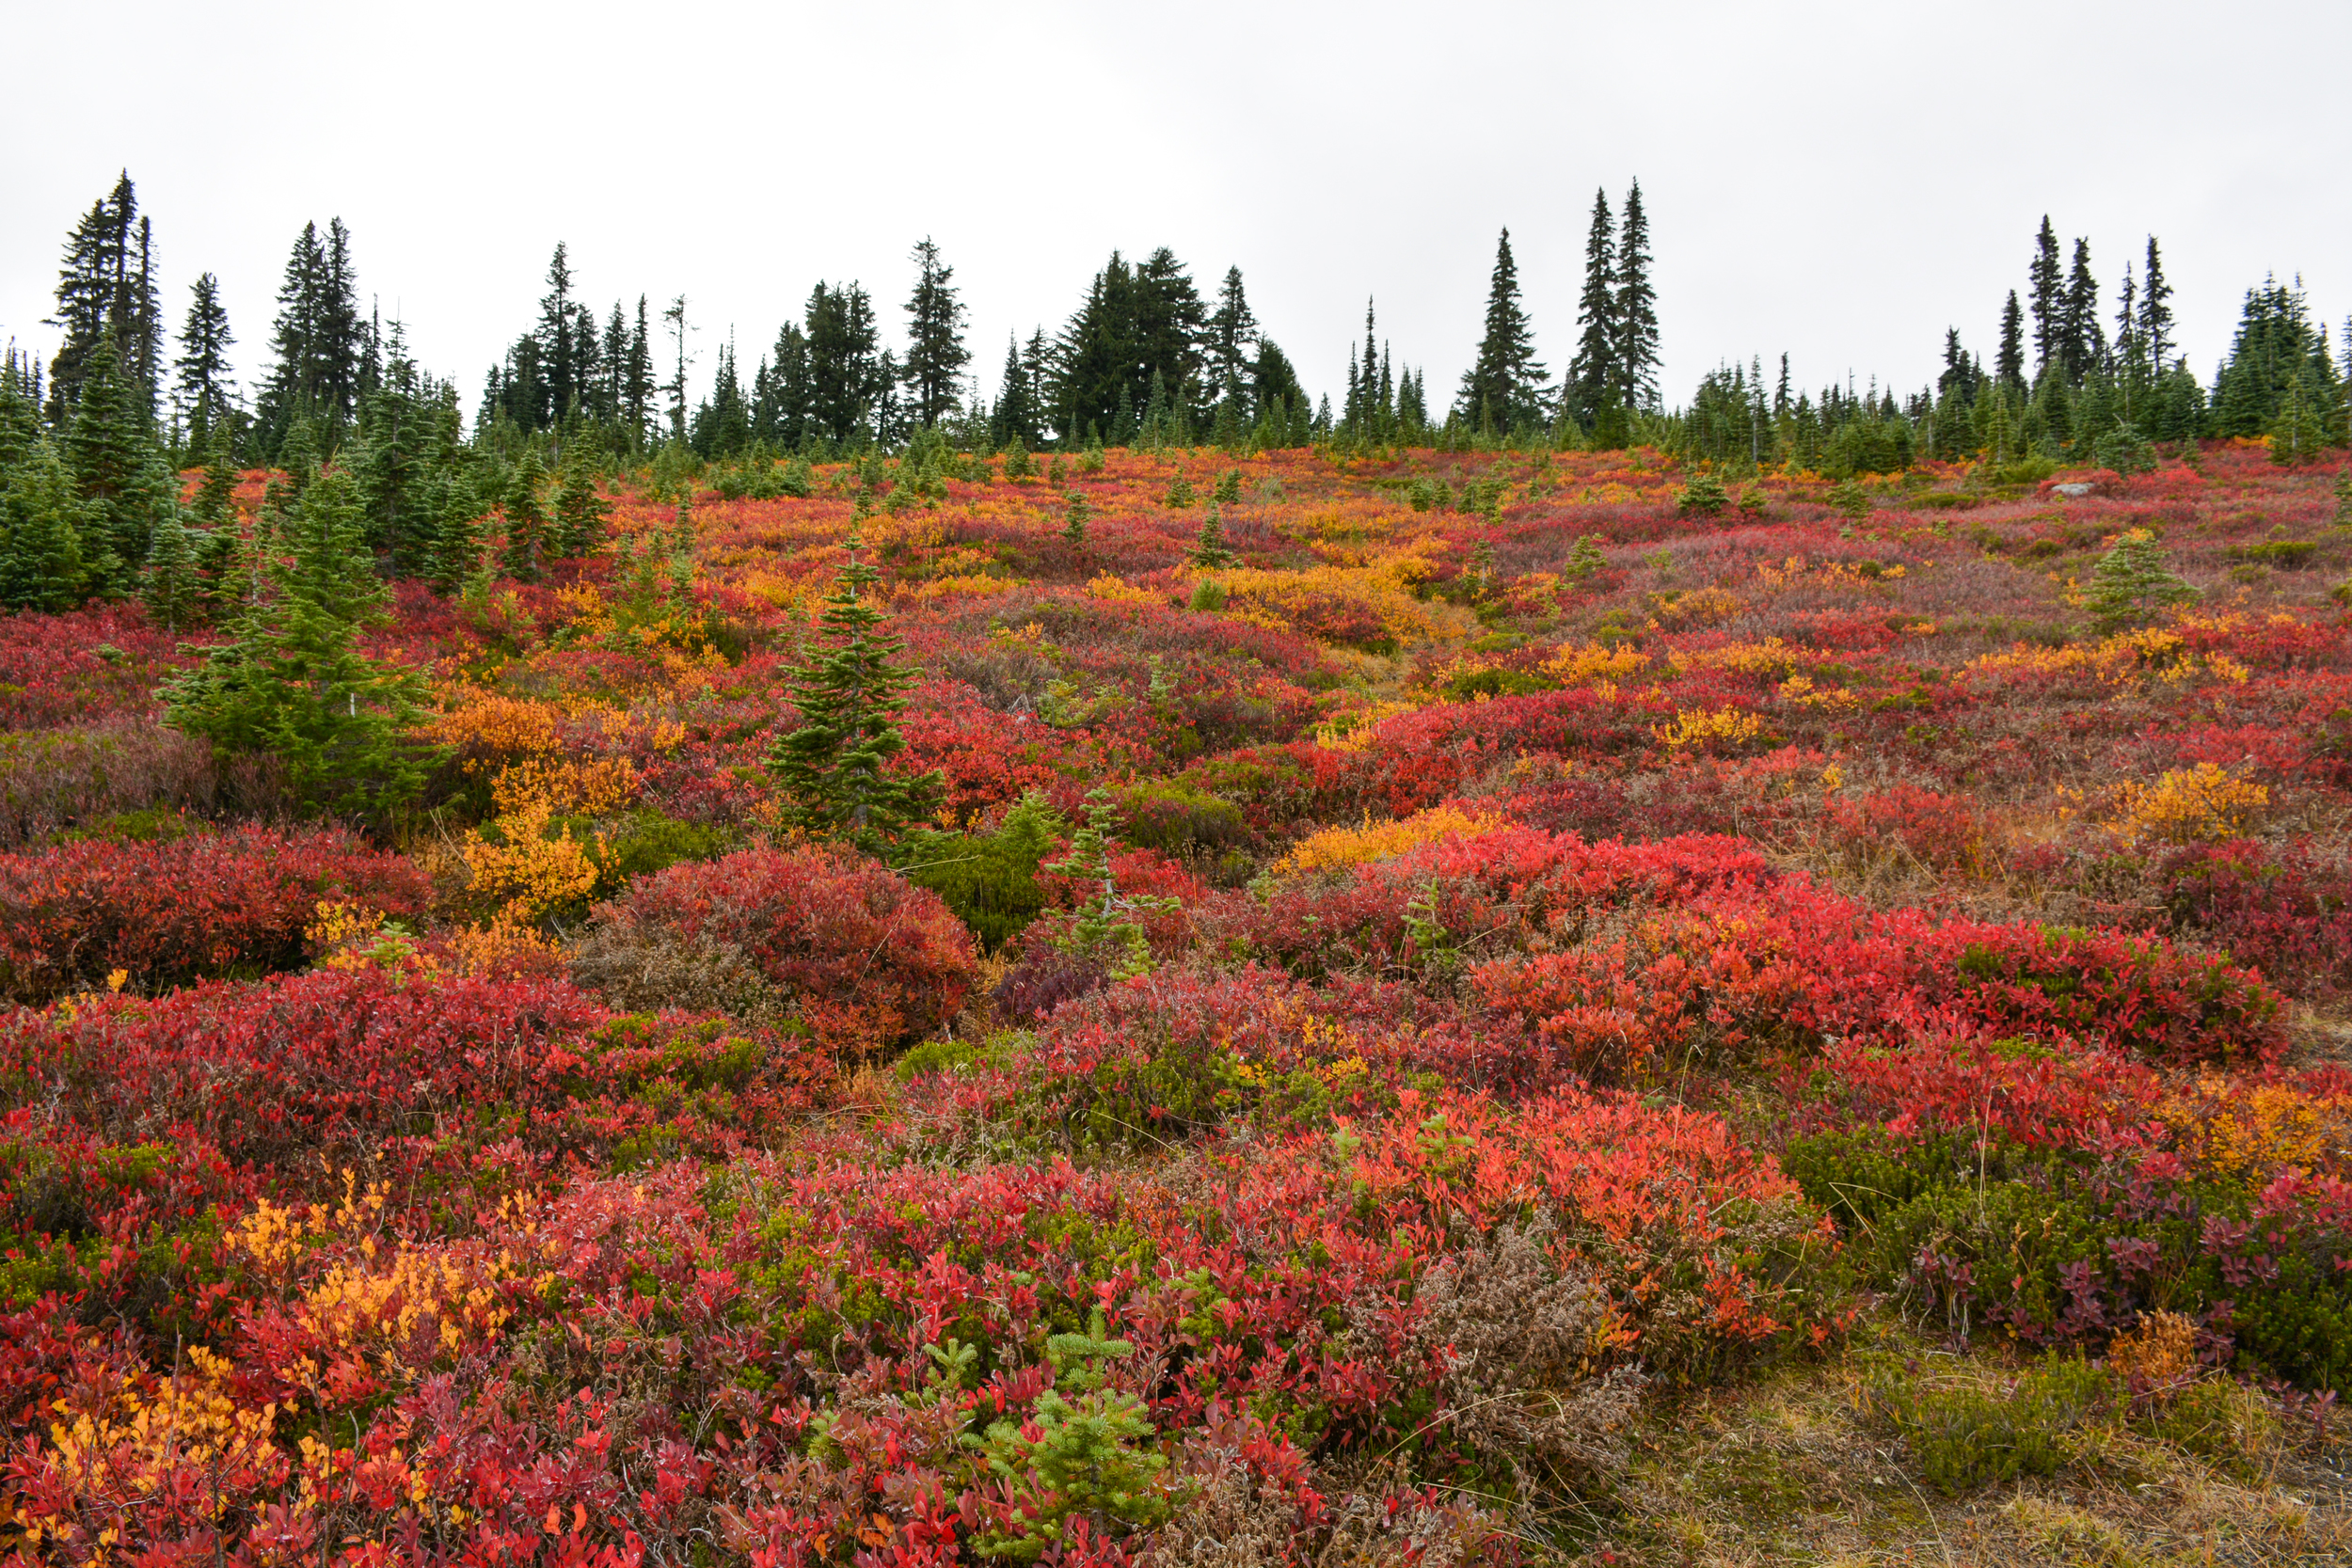 Alpine tundra showing color in September at Mount Rainier National Park